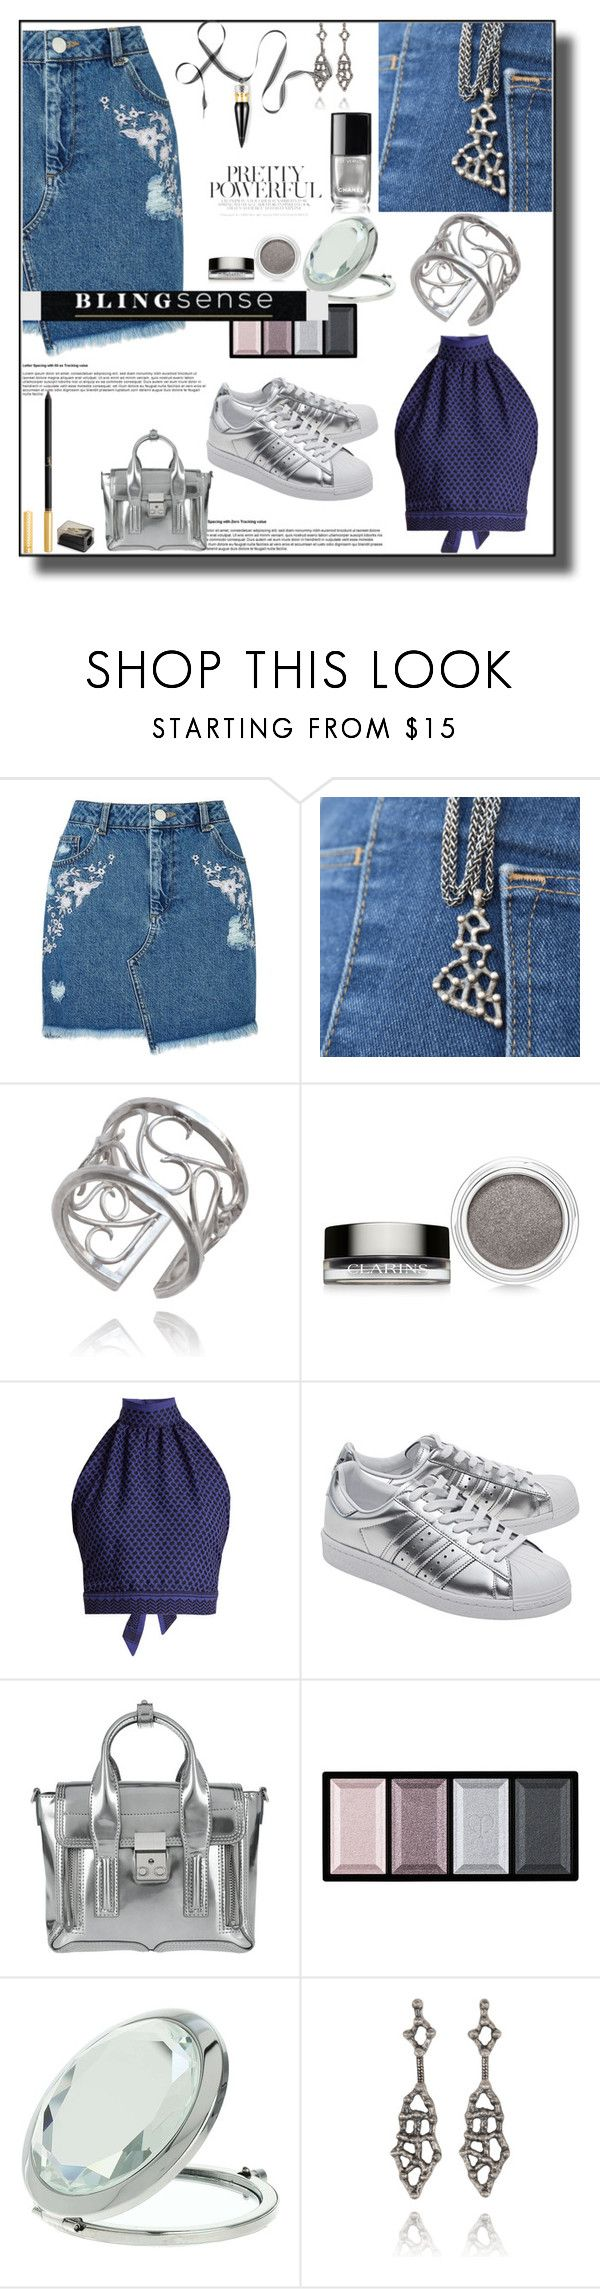 """""""Skirt and Sneakers!!"""" by sabine-promote ❤ liked on Polyvore featuring Miss Selfridge, Clarins, CECILIE Copenhagen, adidas Originals, 3.1 Phillip Lim, Clé de Peau Beauté, Chanel and Christian Louboutin"""